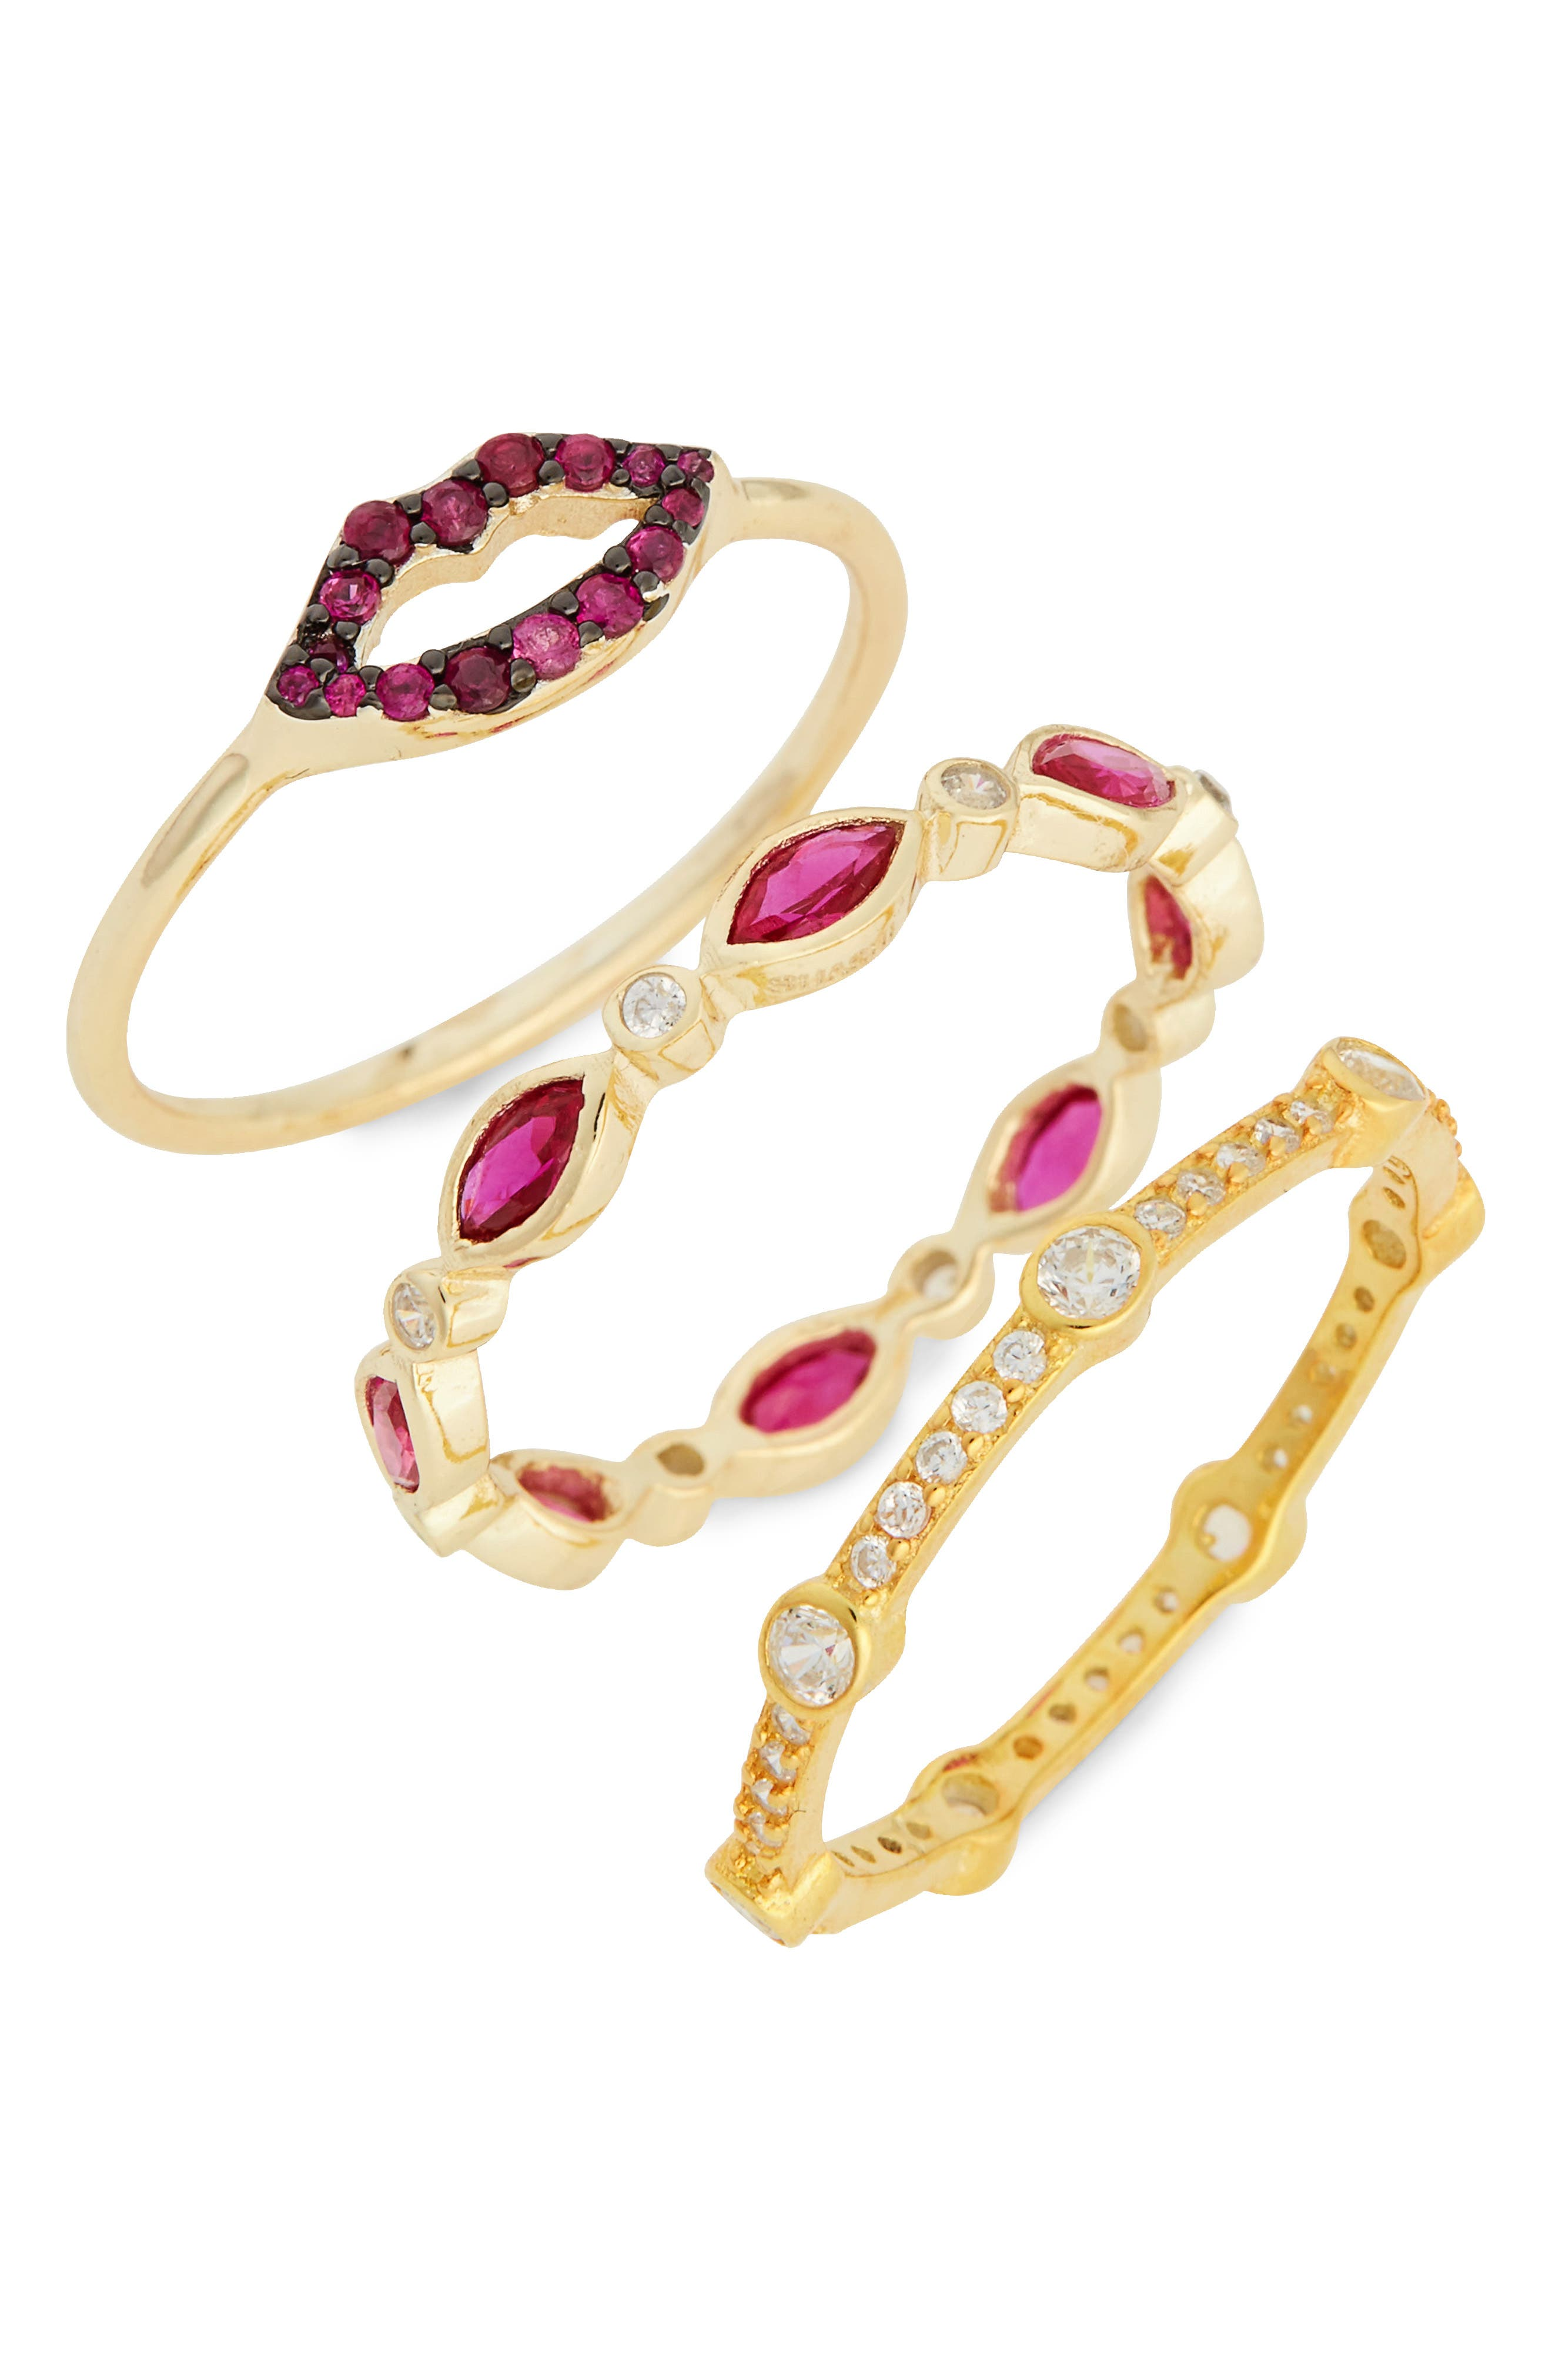 Katie Set of 3 Crystal Vermeil Rings,                             Main thumbnail 1, color,                             Yellow Gold/ Ruby